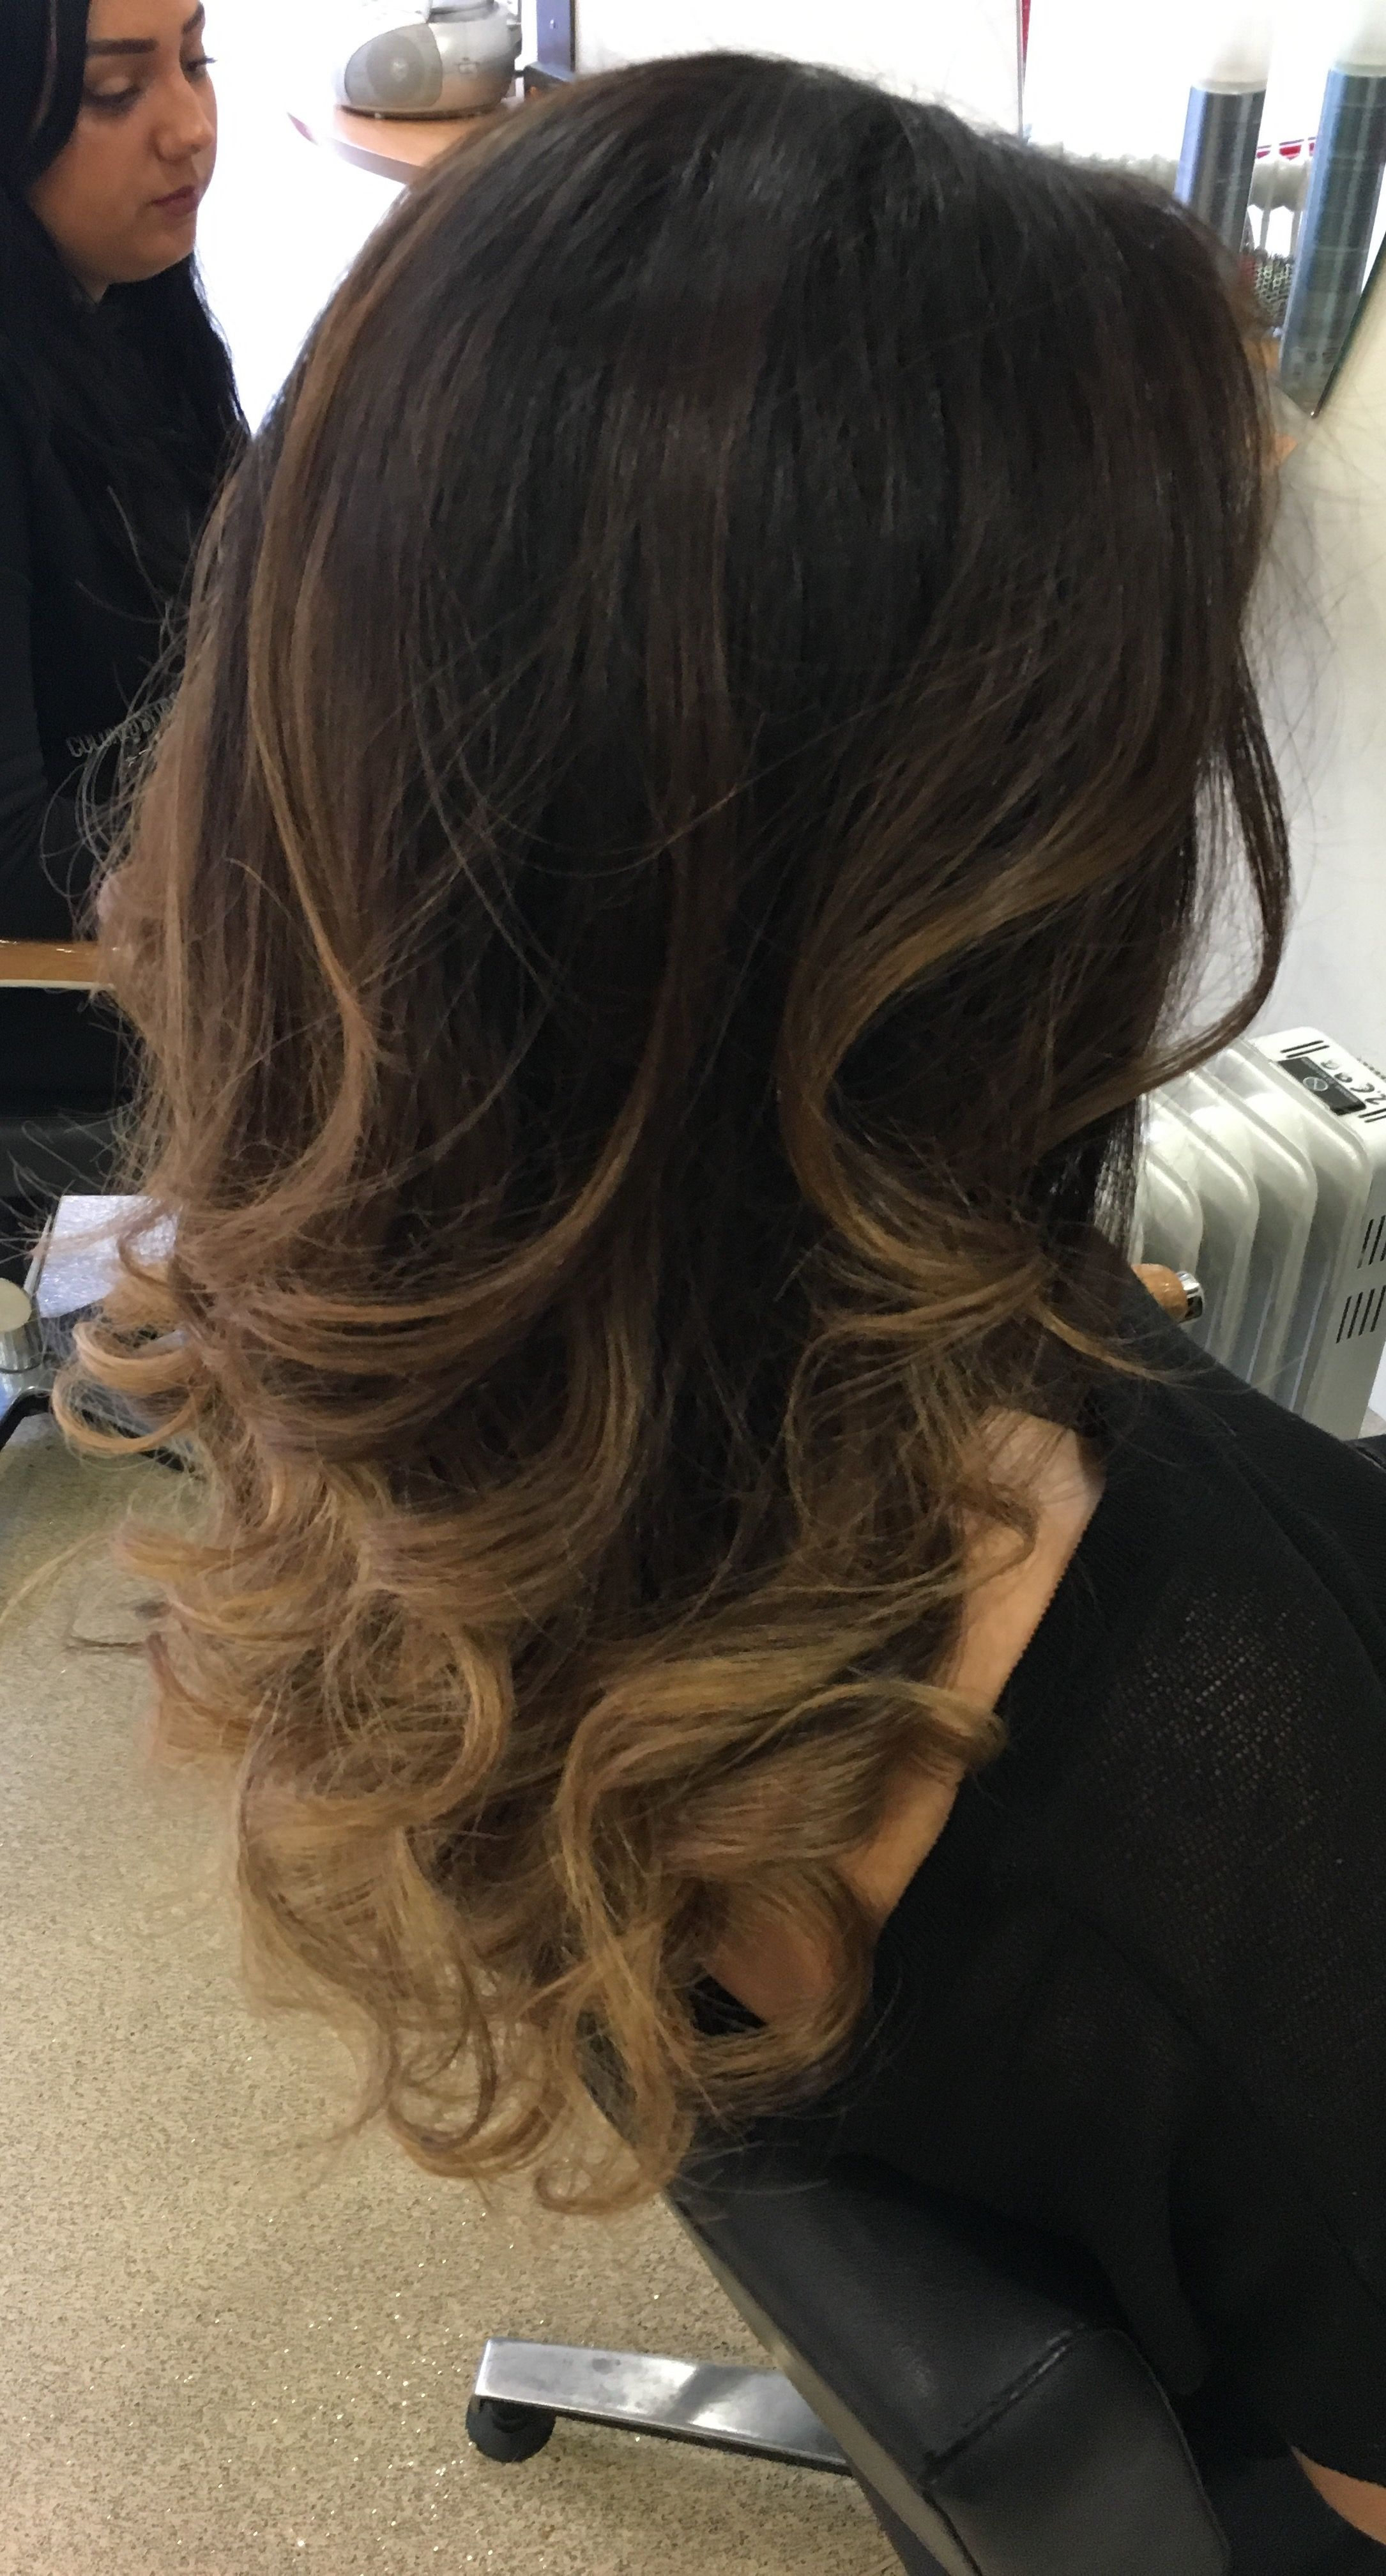 Curly blowdry hairstyles Pinterest